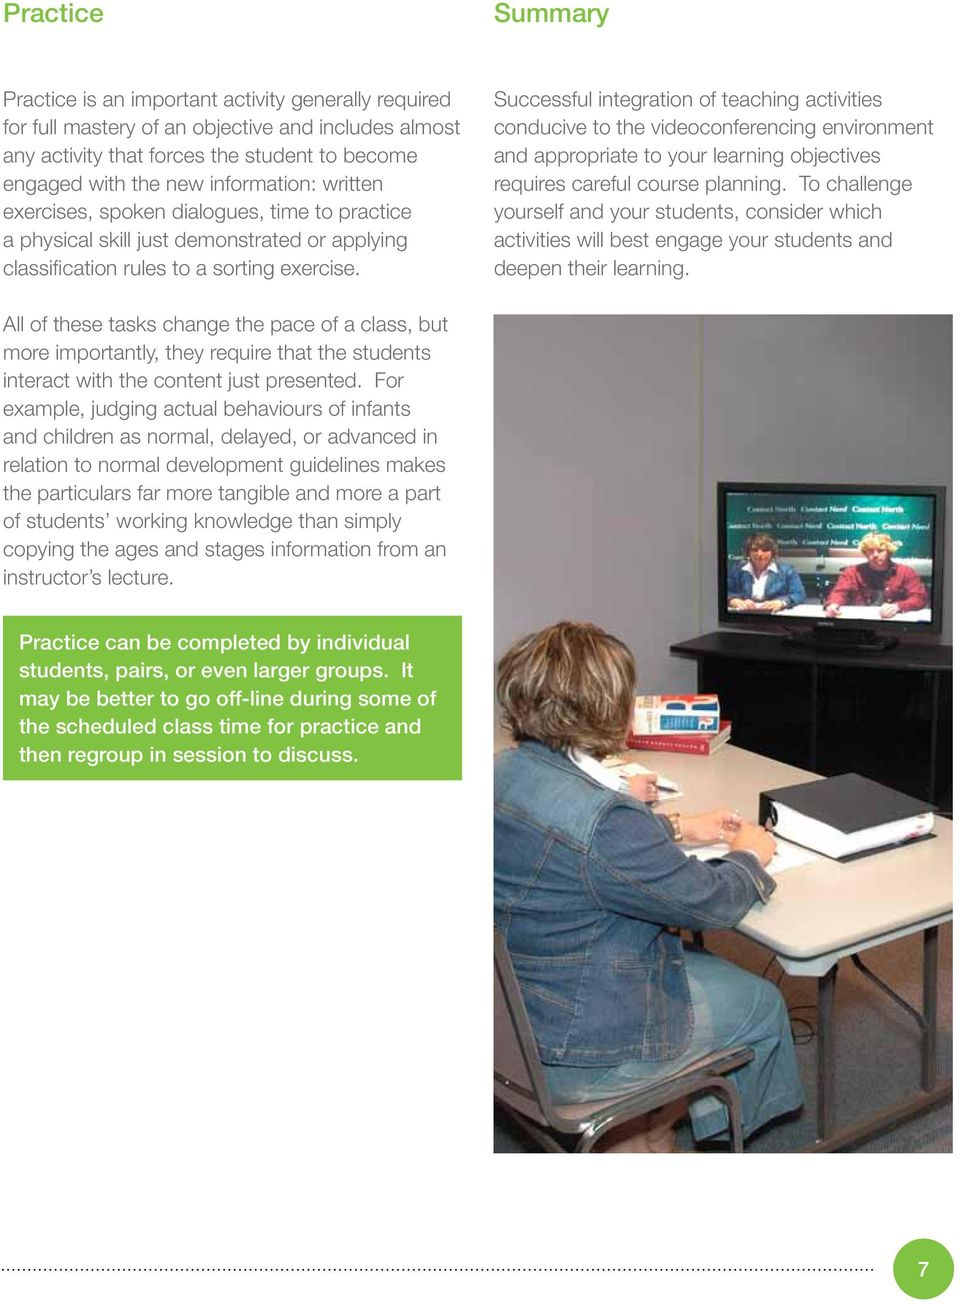 Successful integration of teaching activities conducive to the videoconferencing environment and appropriate to your learning objectives requires careful course planning.